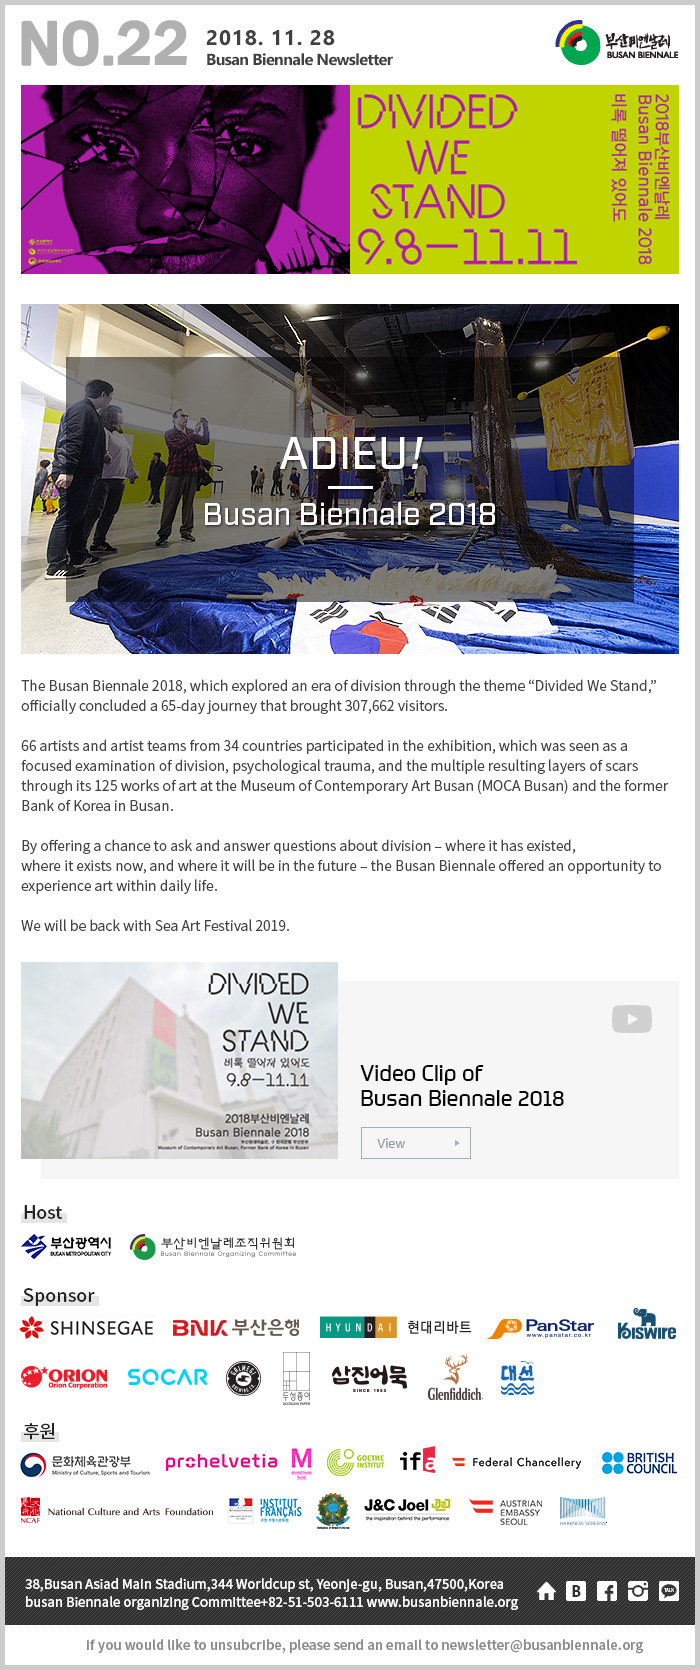 [Newsletter] Busan Biennale Newsletter NO. 22 Thumbnail image